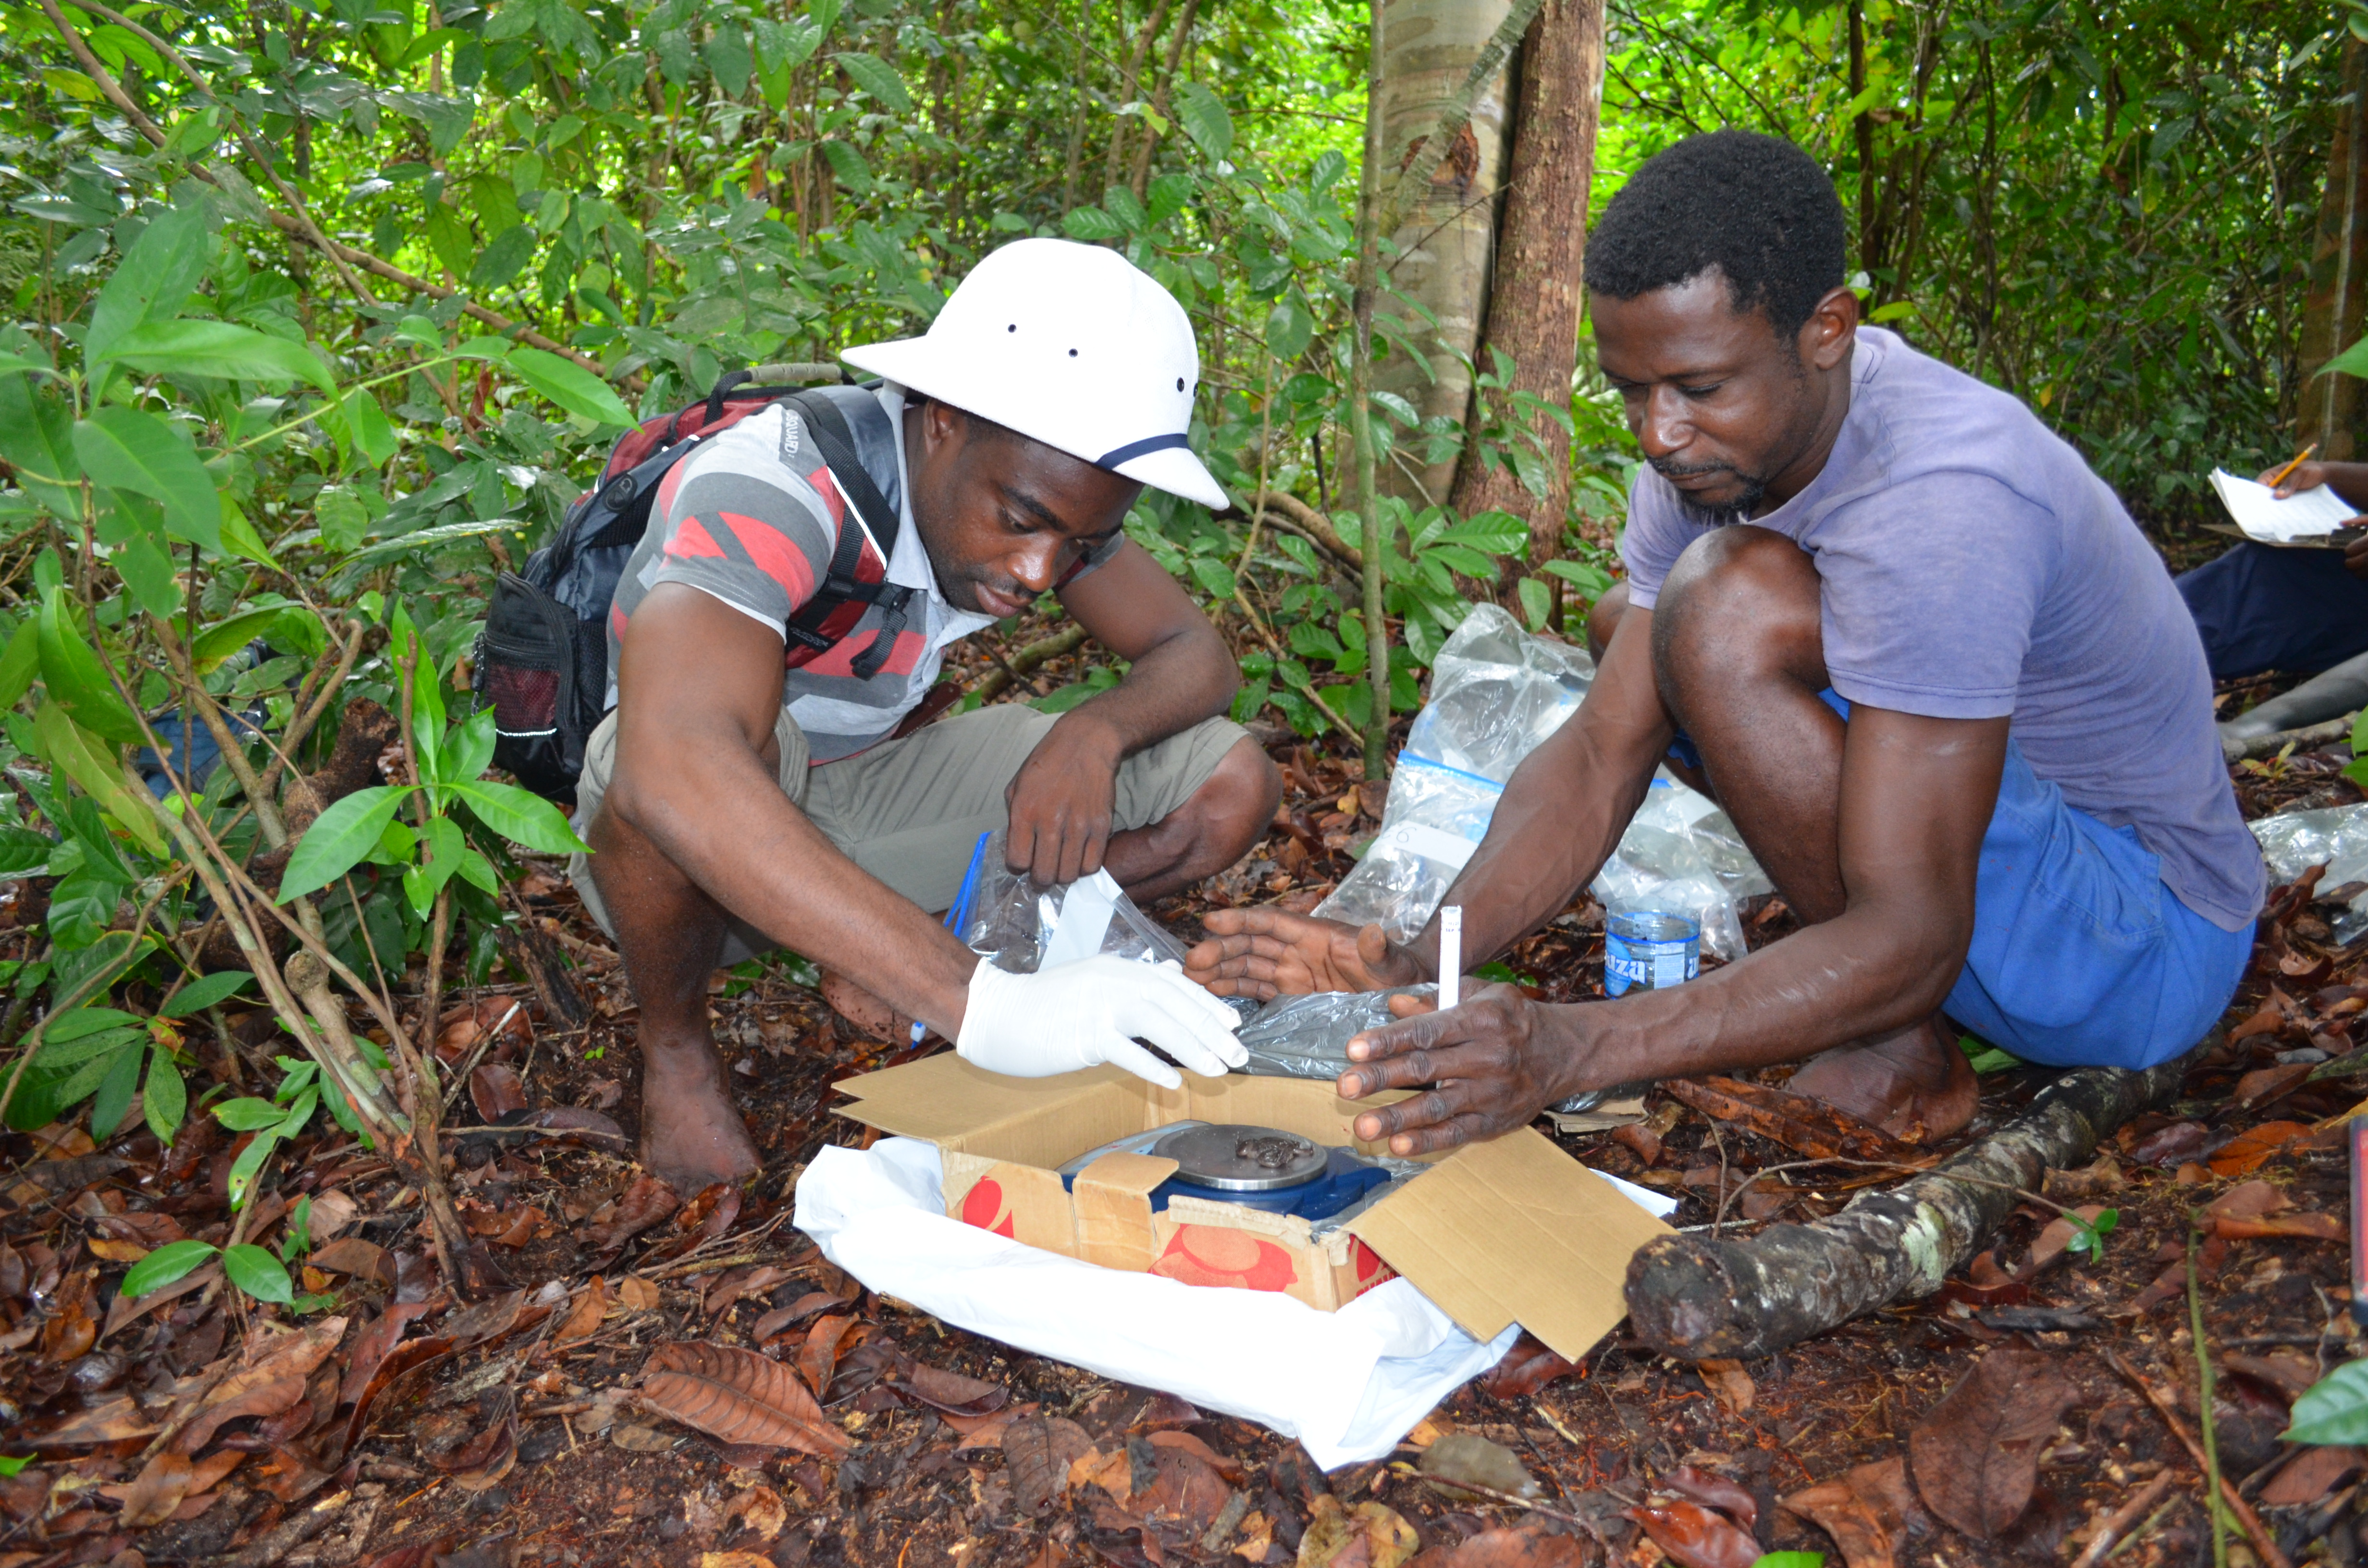 Axel Litona, then an SCBI Gabon Biodiversity program intern, and Pierre Nicaise Guissiegou, road project field assistant, collecting data on frogs in the field in Gabon.